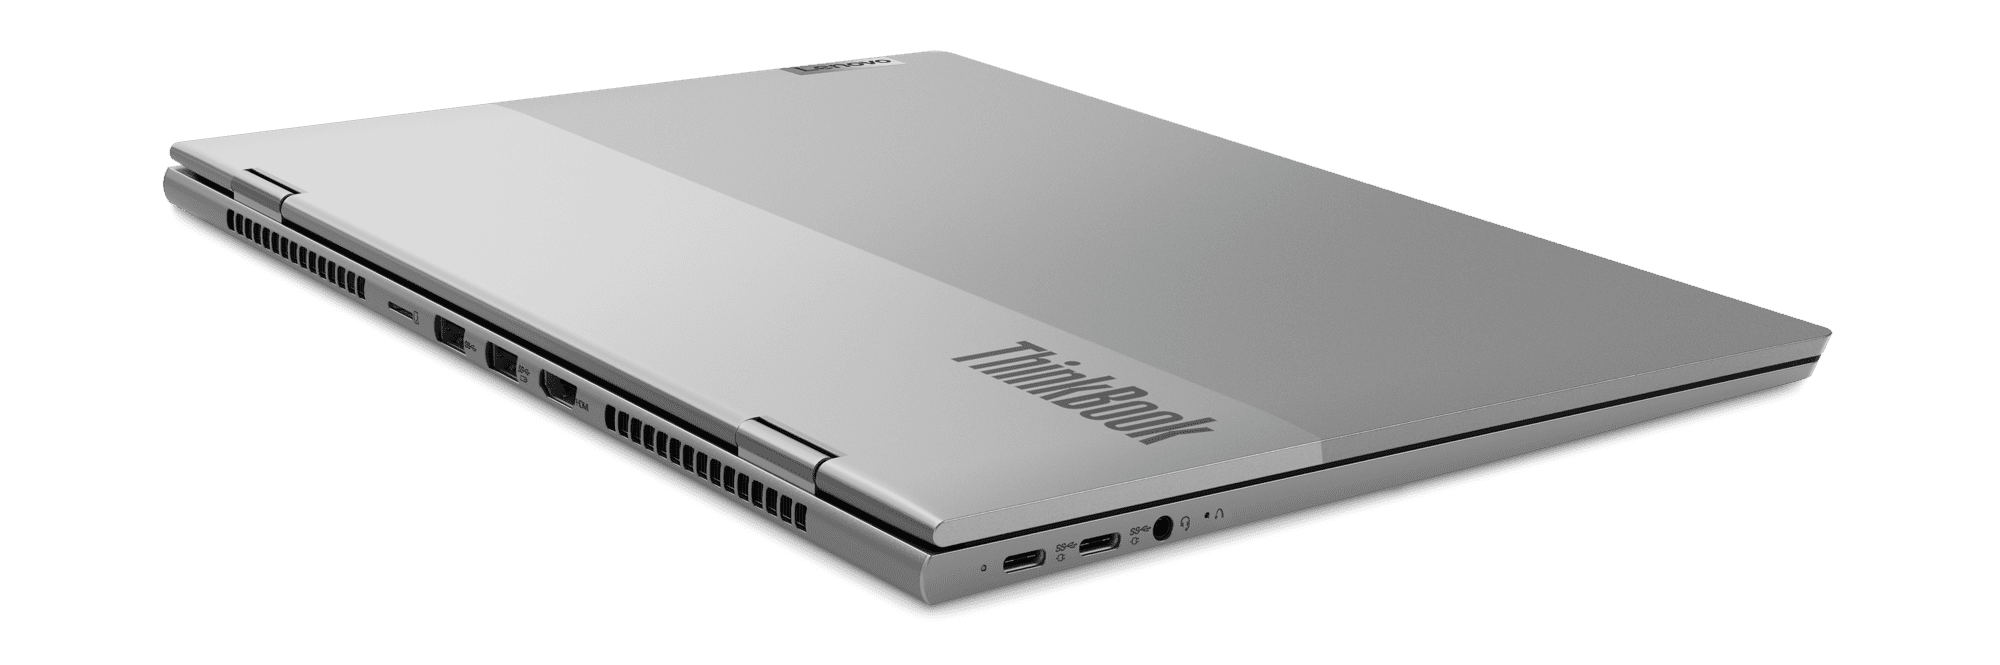 ThinkBook 14p – Dual-tone finish